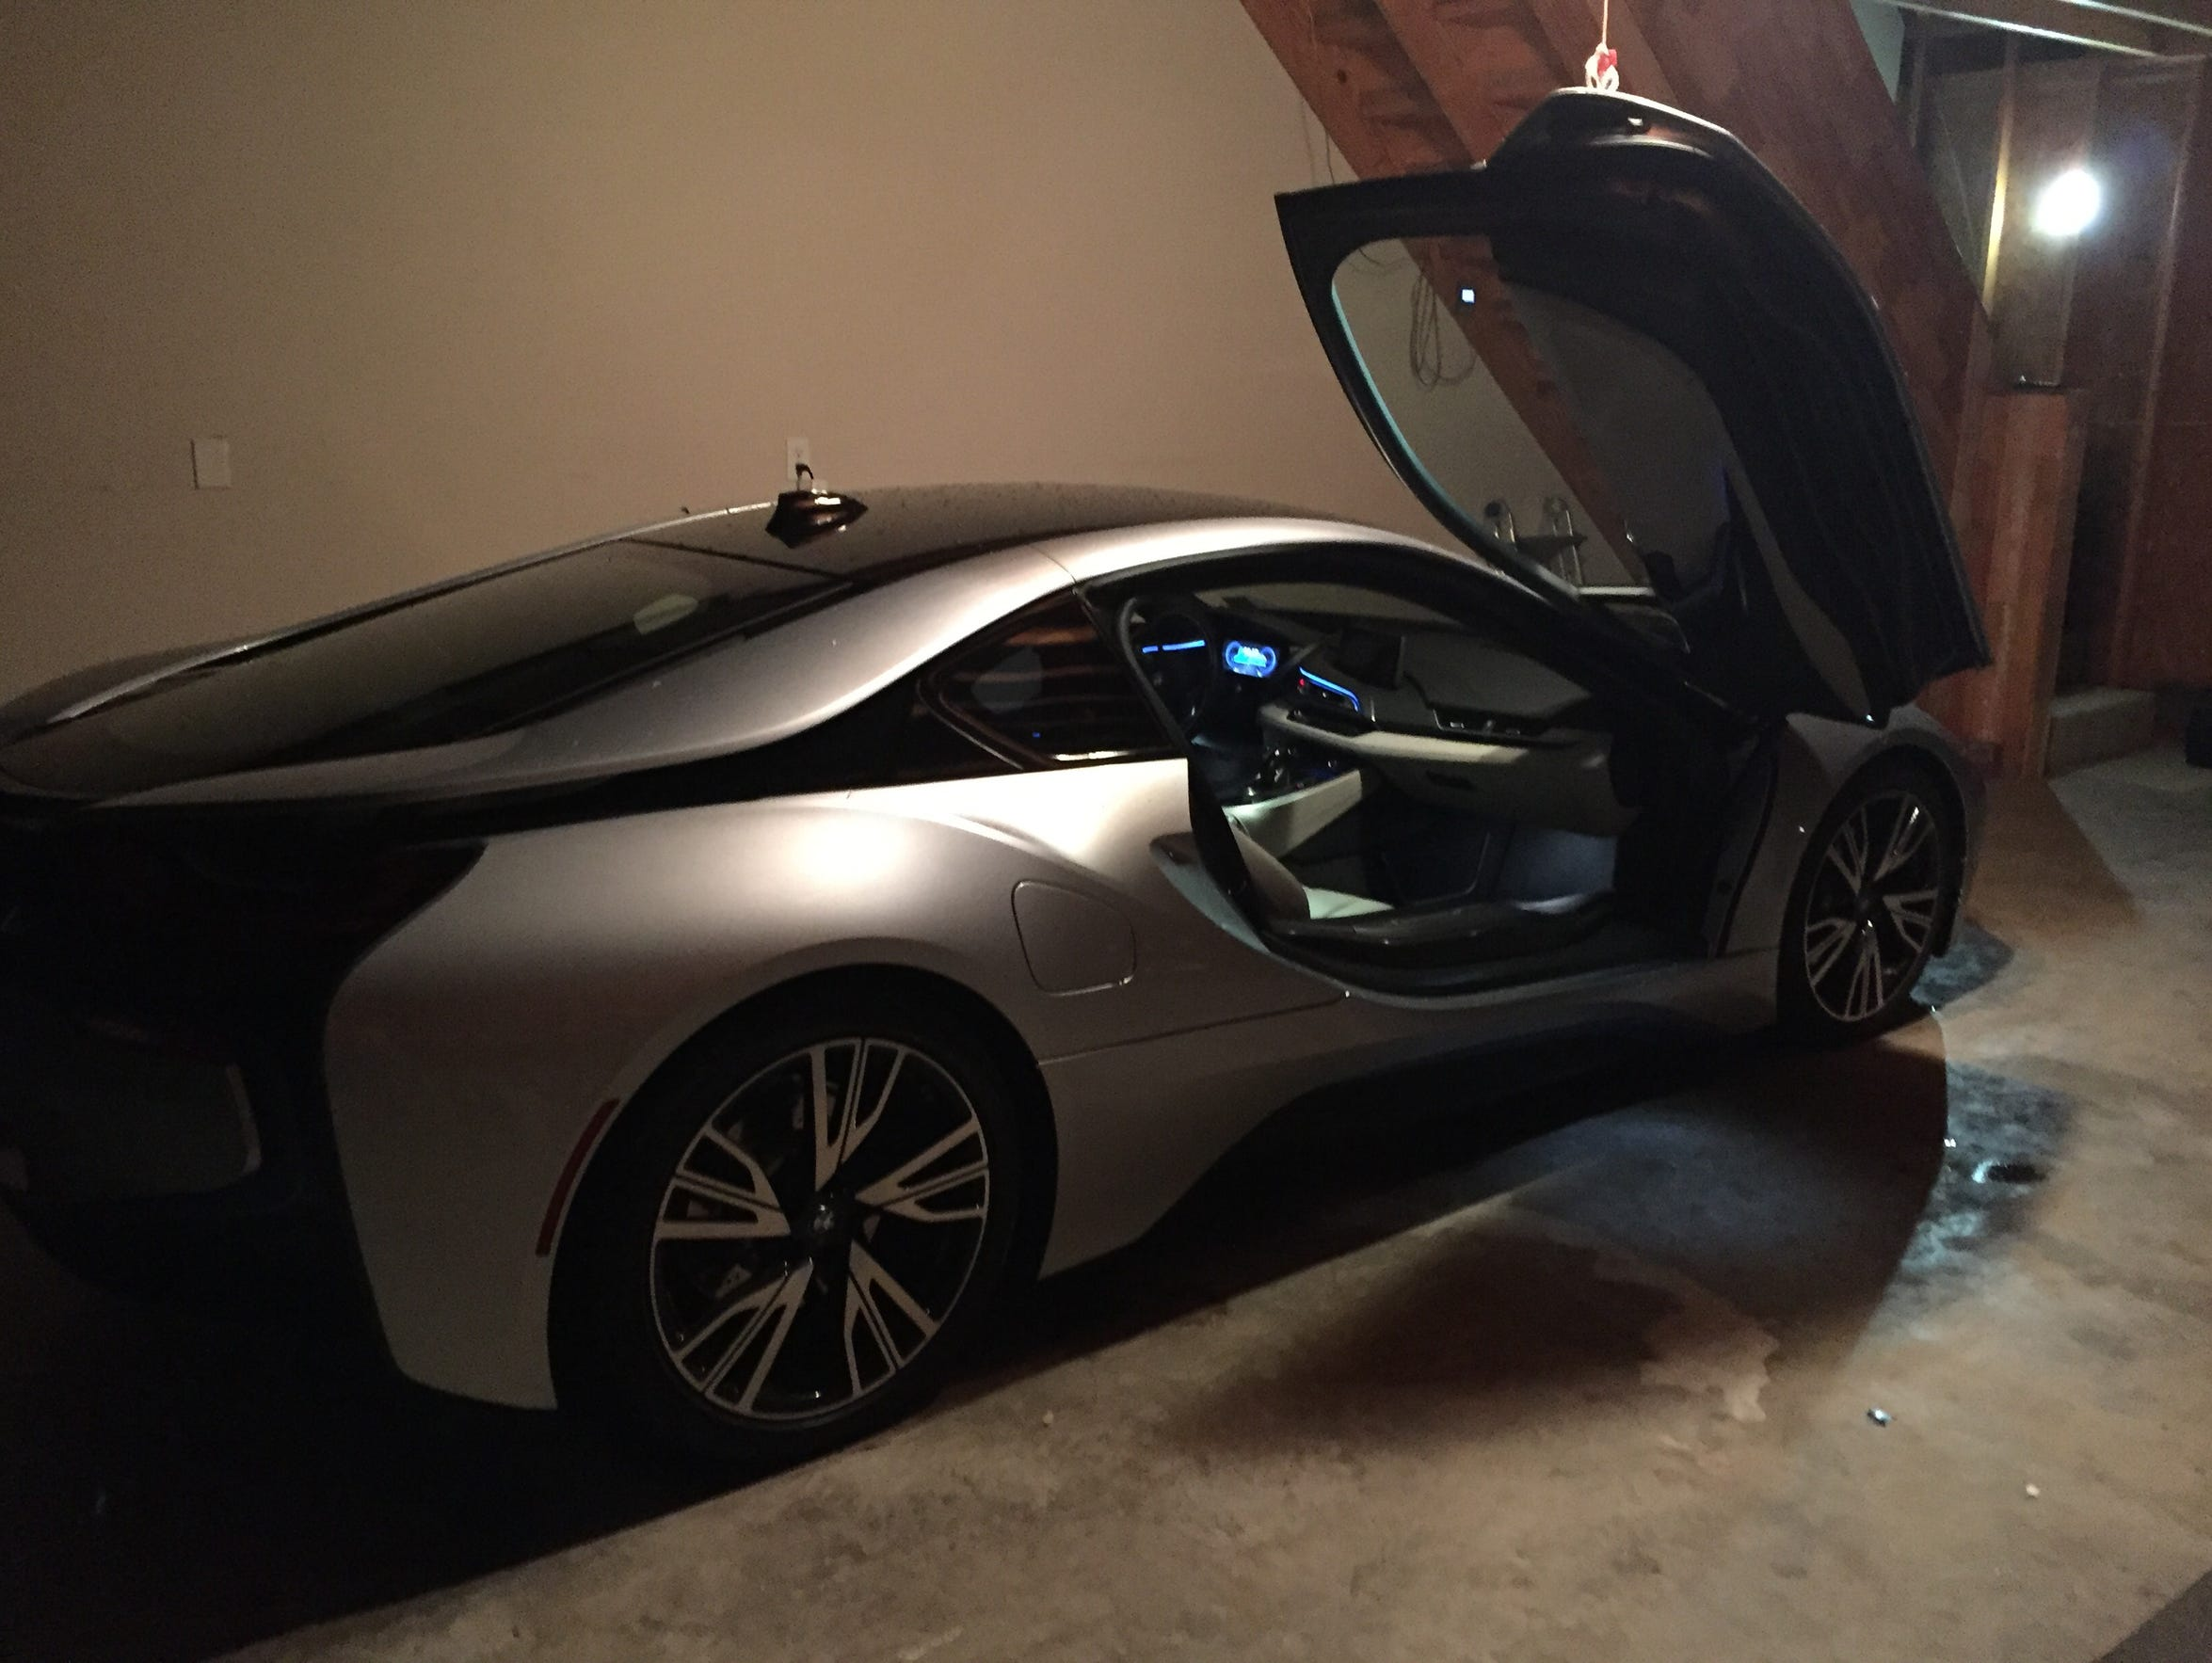 Travis DeYoung snapped this picture of a BMW I8, after